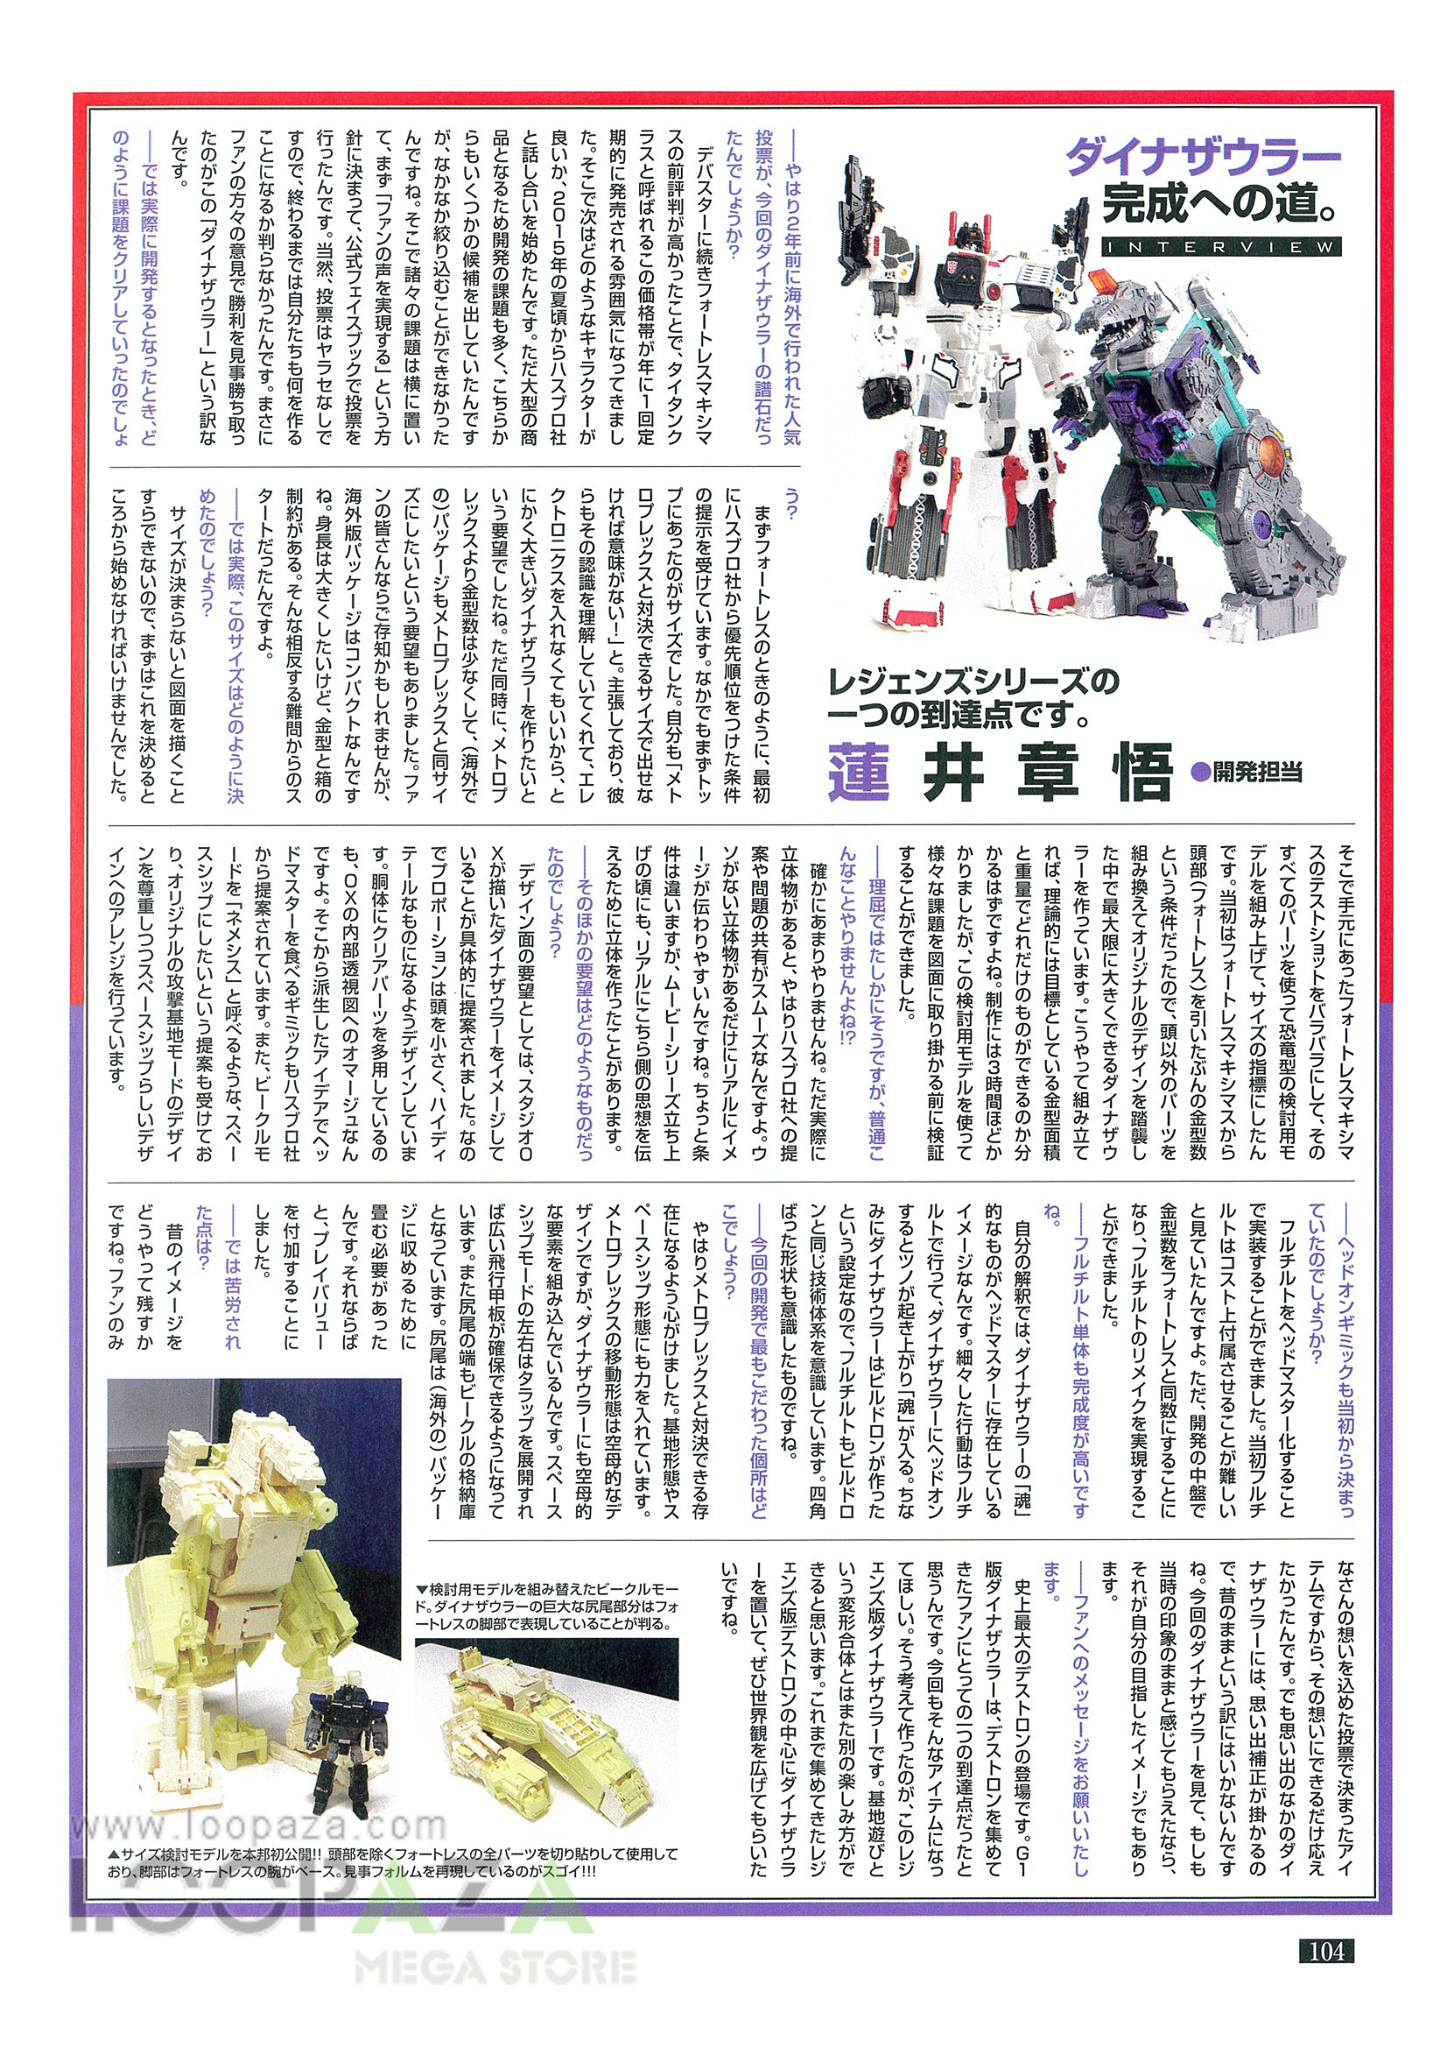 Transformers News: New Images of Takara Legends LG 43 Dinosaurer aka Trypticon in Figure King No. 230